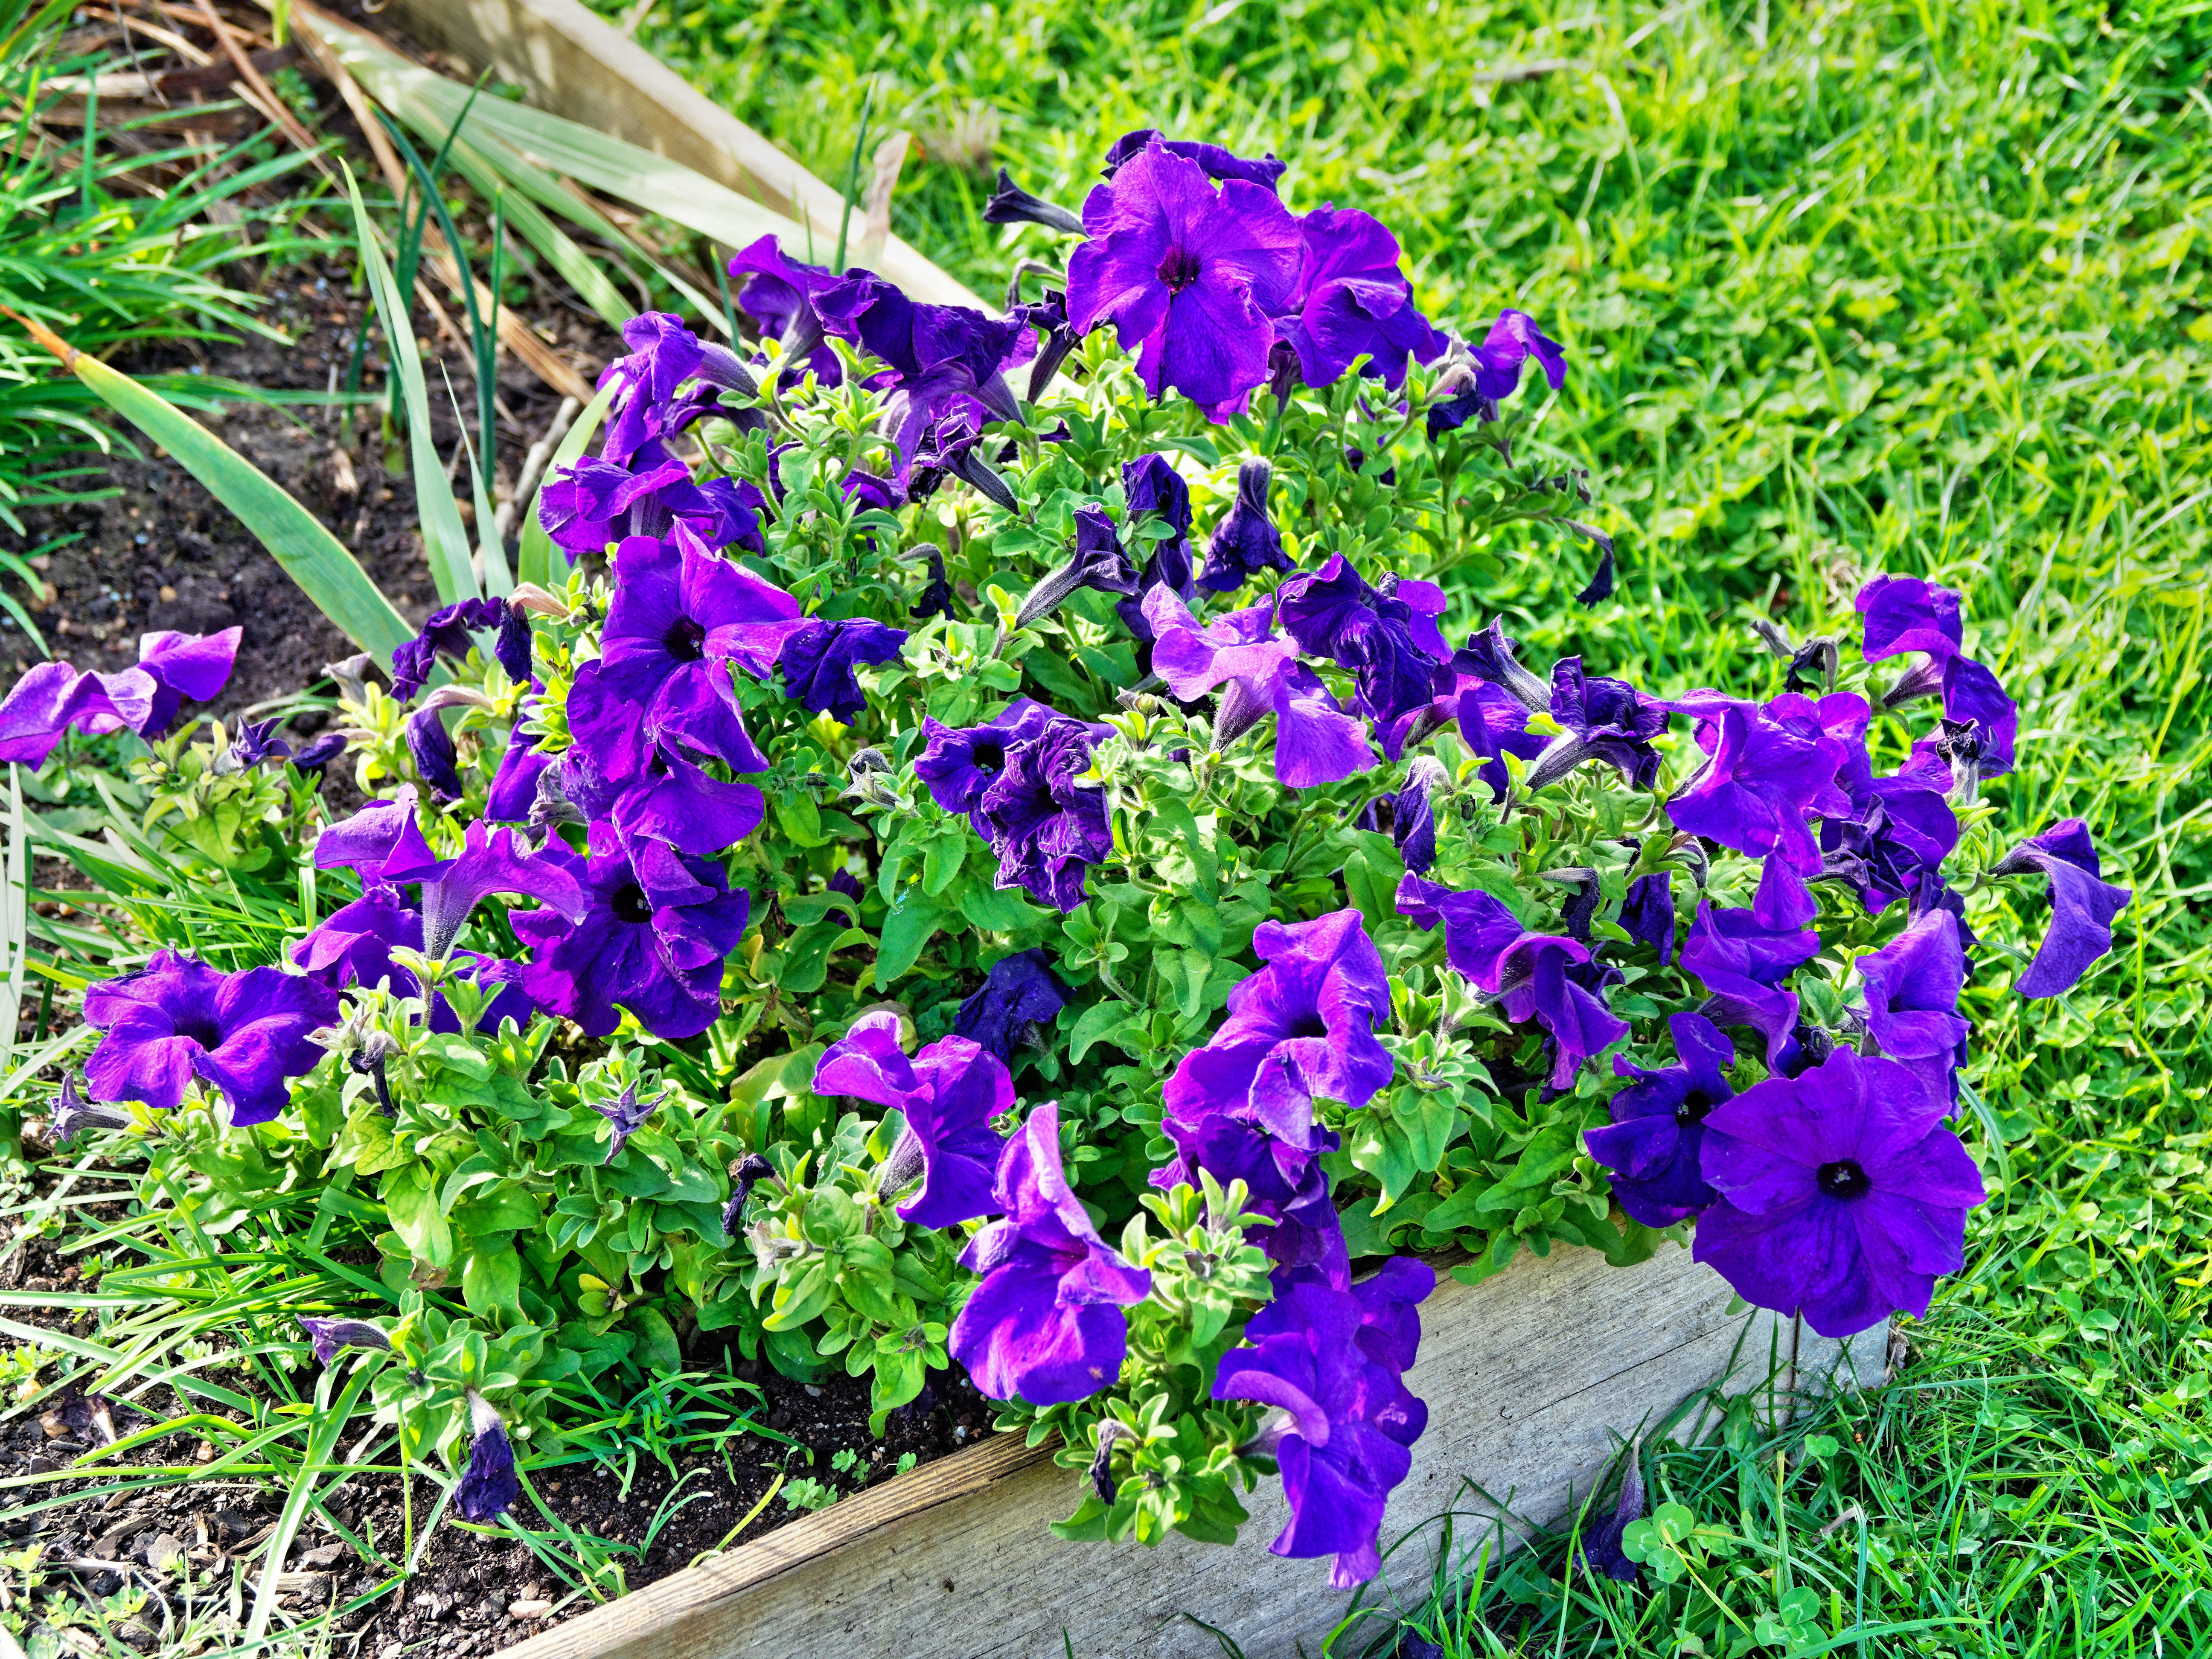 This should be Petunia-1.jpeg.  Is it missing?